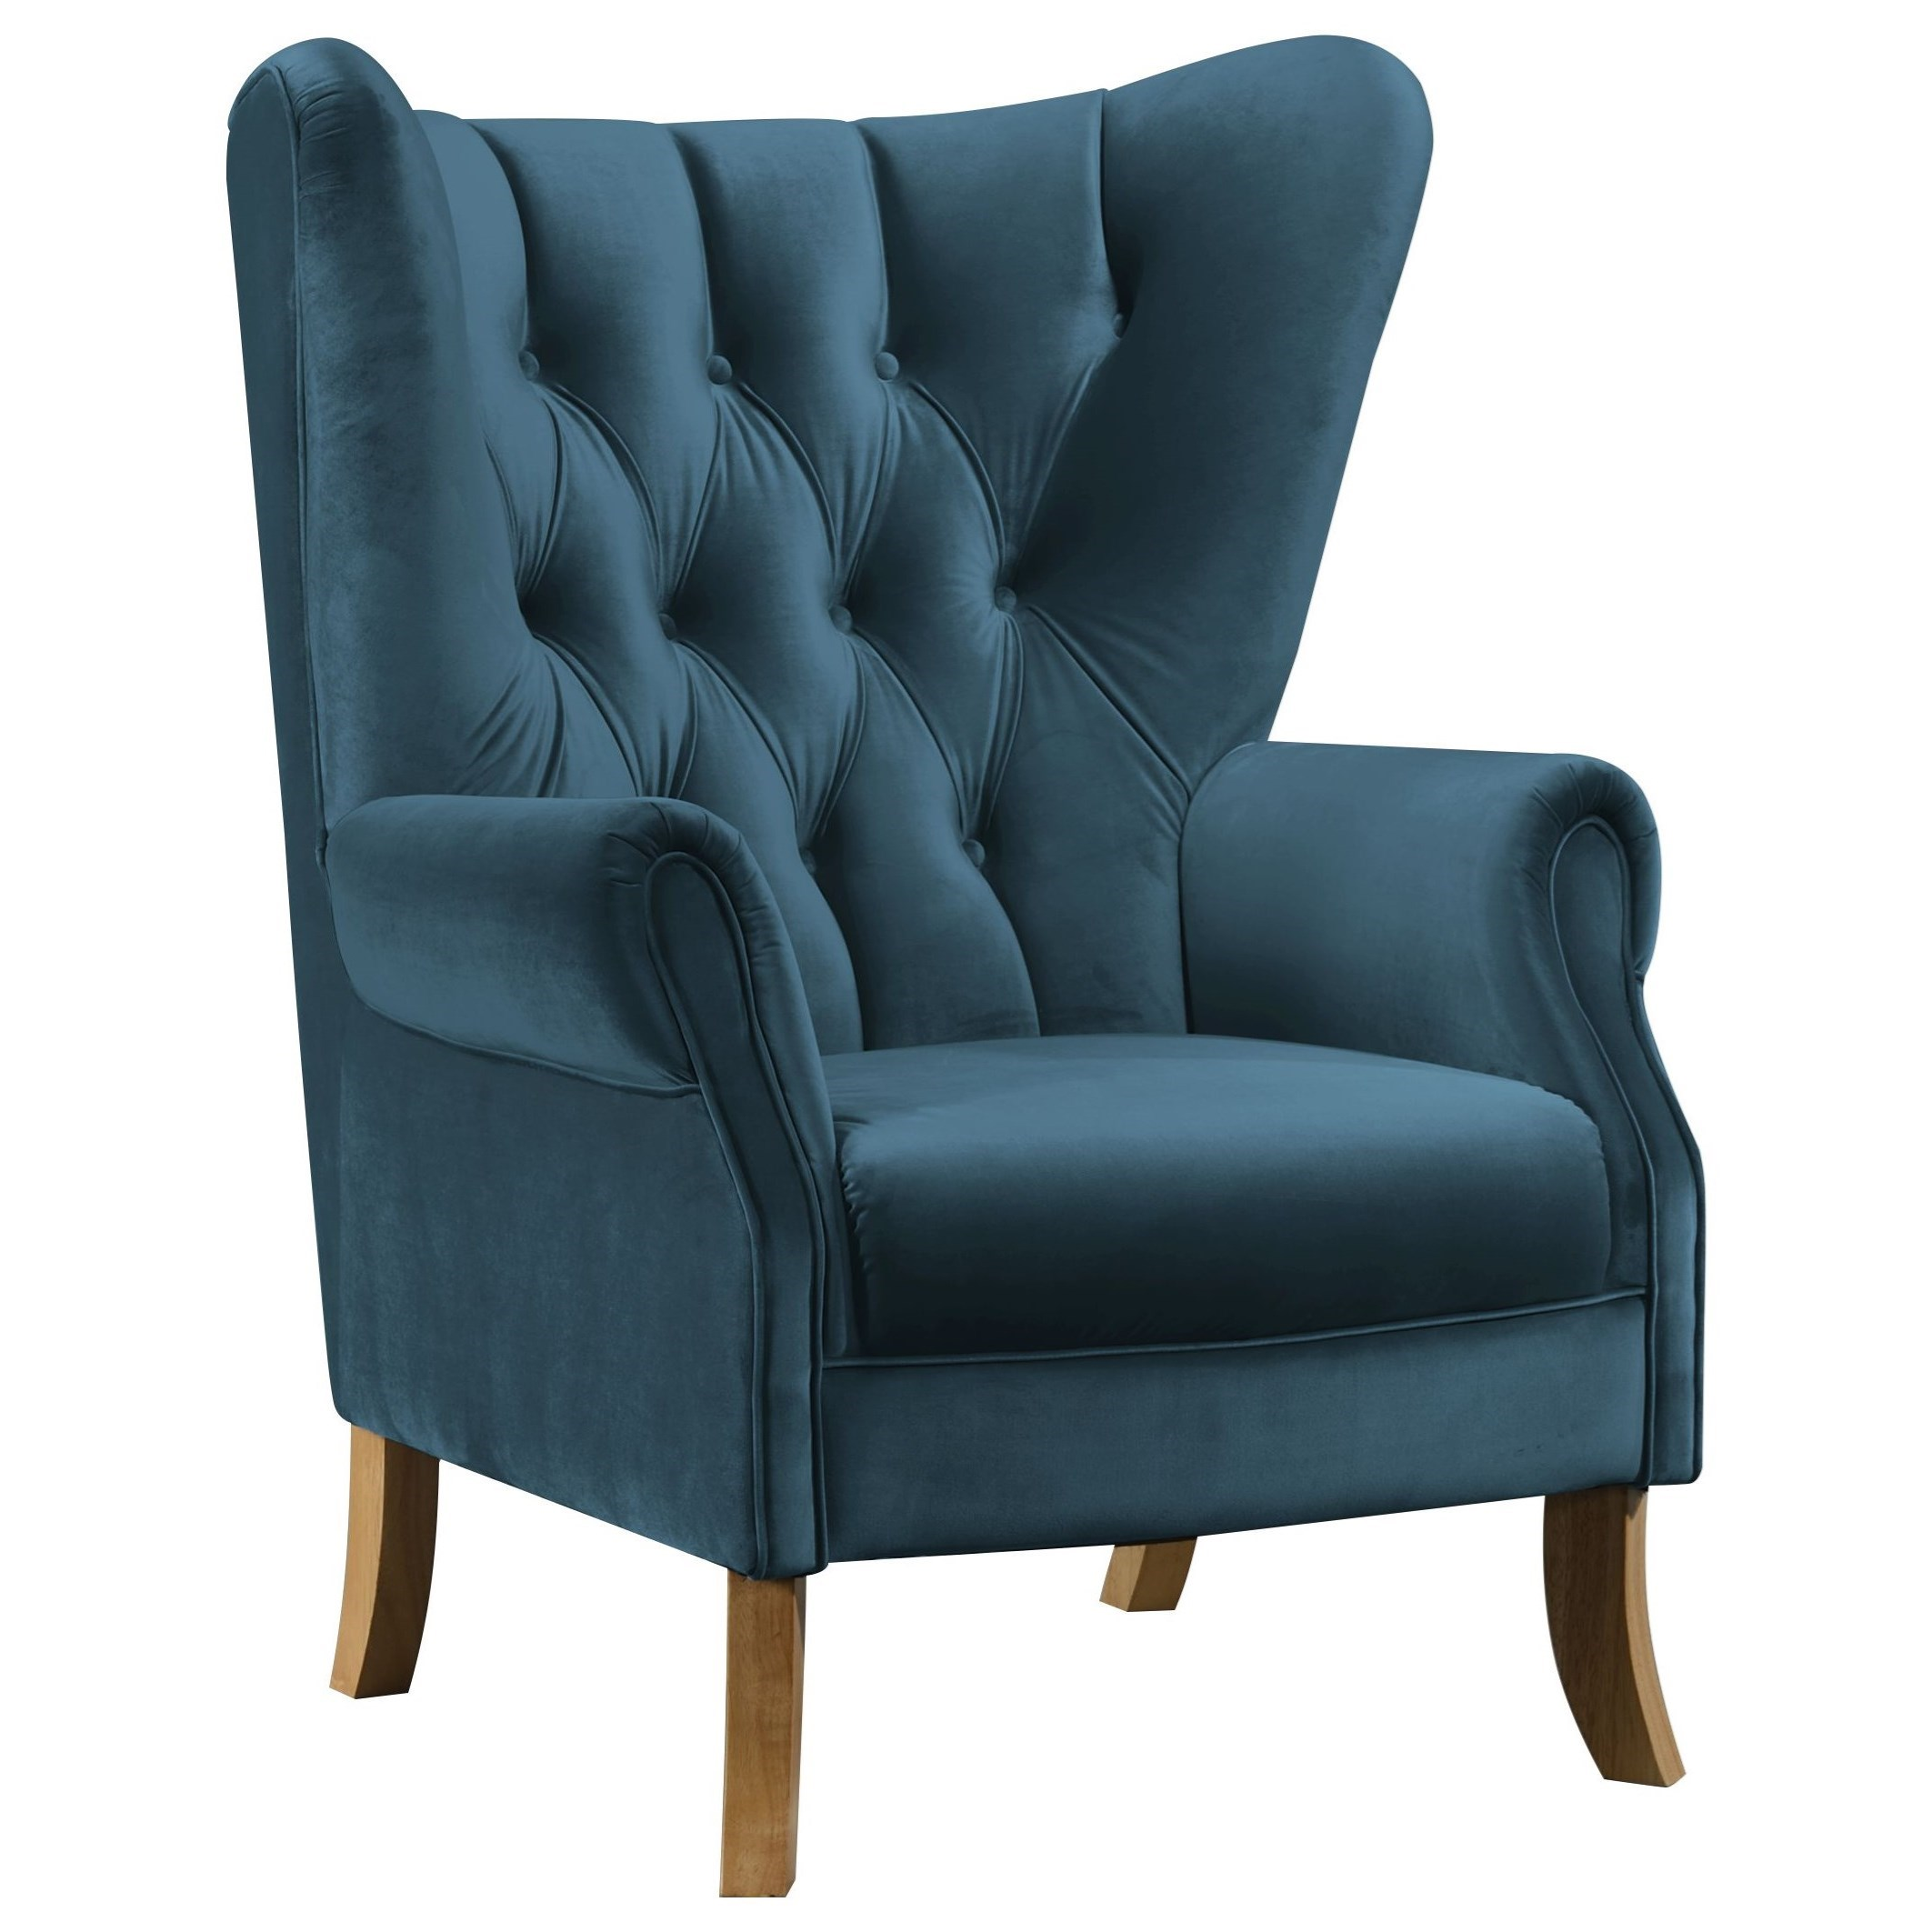 Adonis Accent Chair by Acme Furniture at Carolina Direct